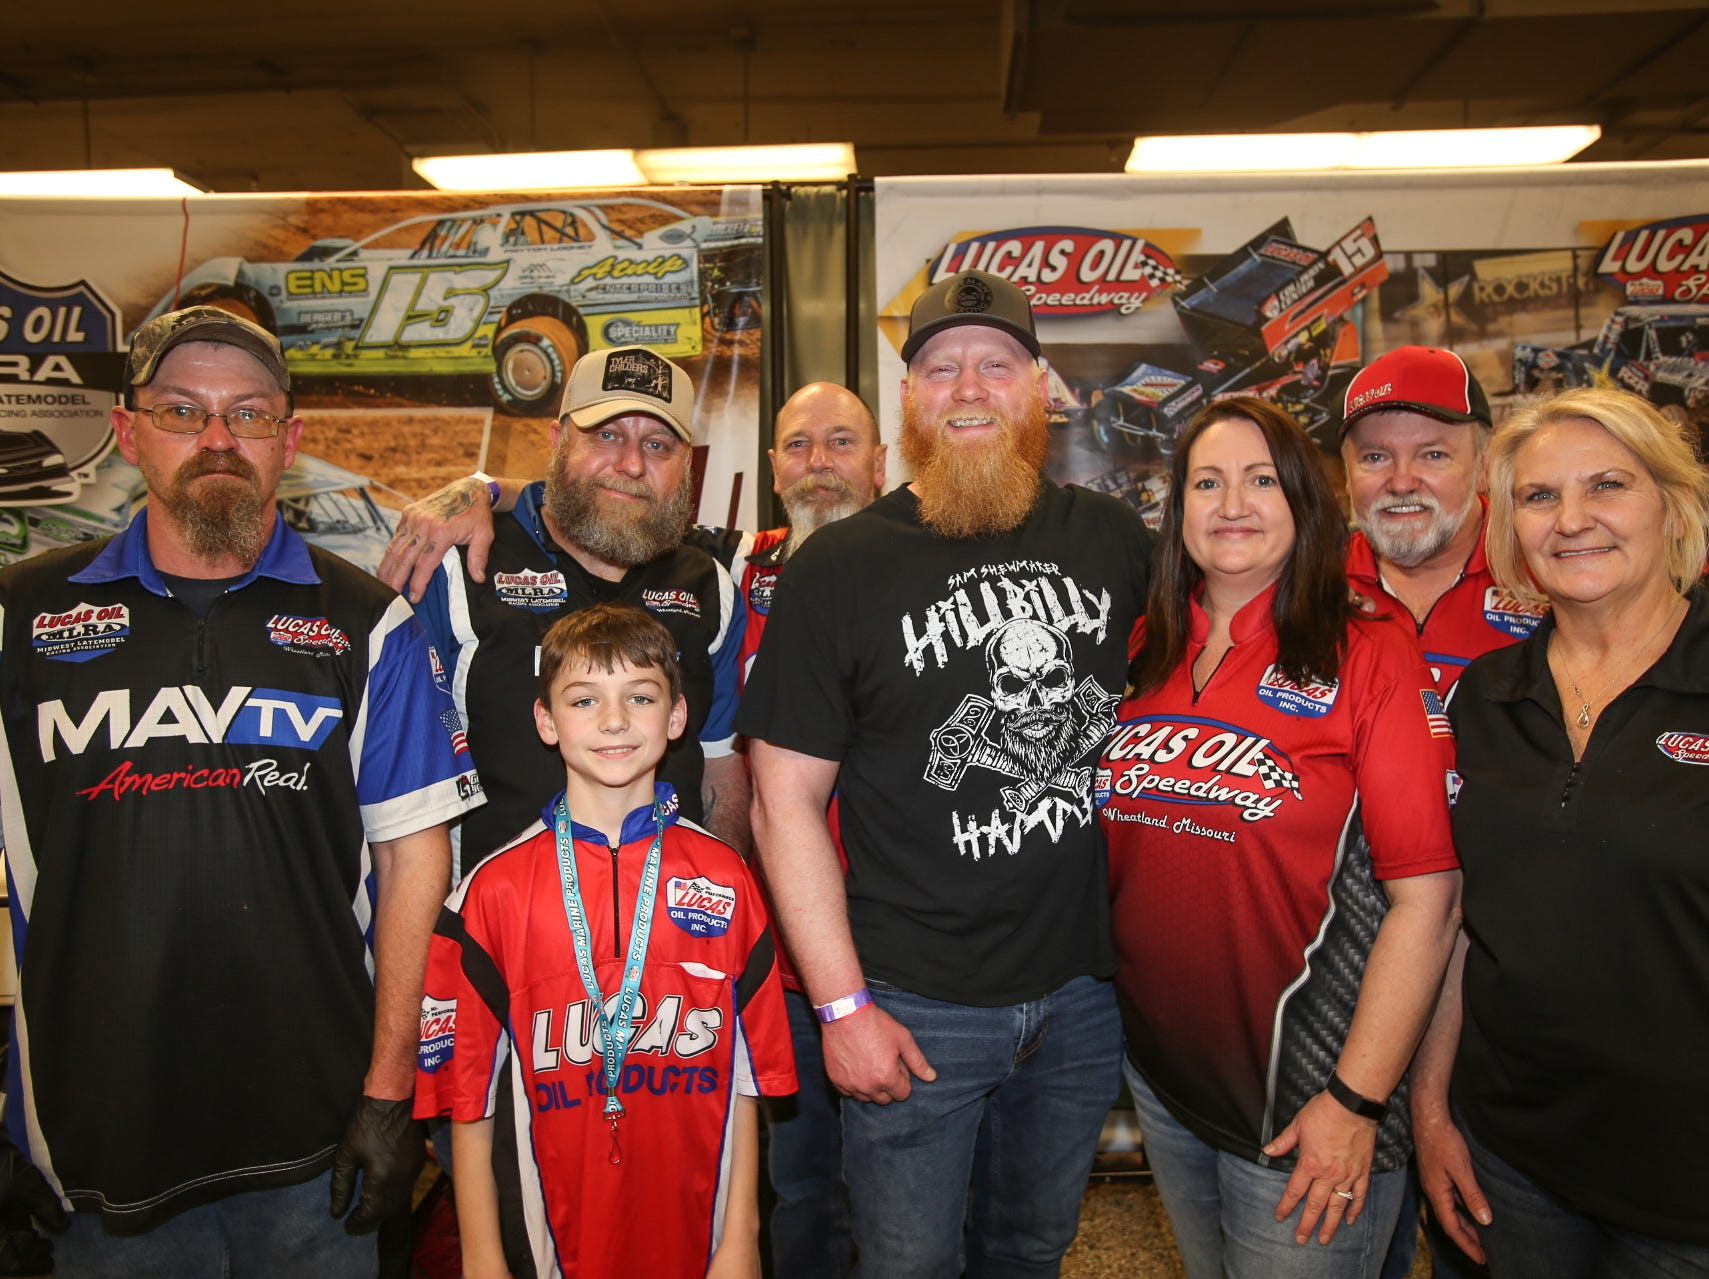 Sam Shewmaker and the Lucas Oil Speedway team